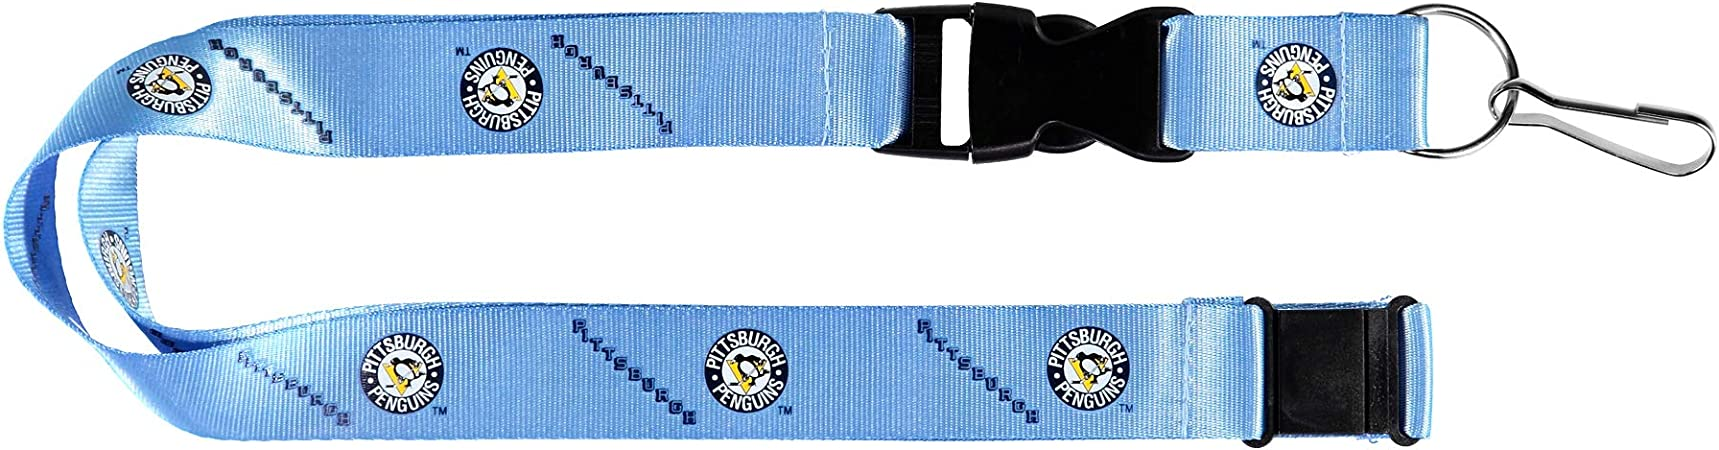 Dynamic Lanyard aminco Pittsburgh Penguins